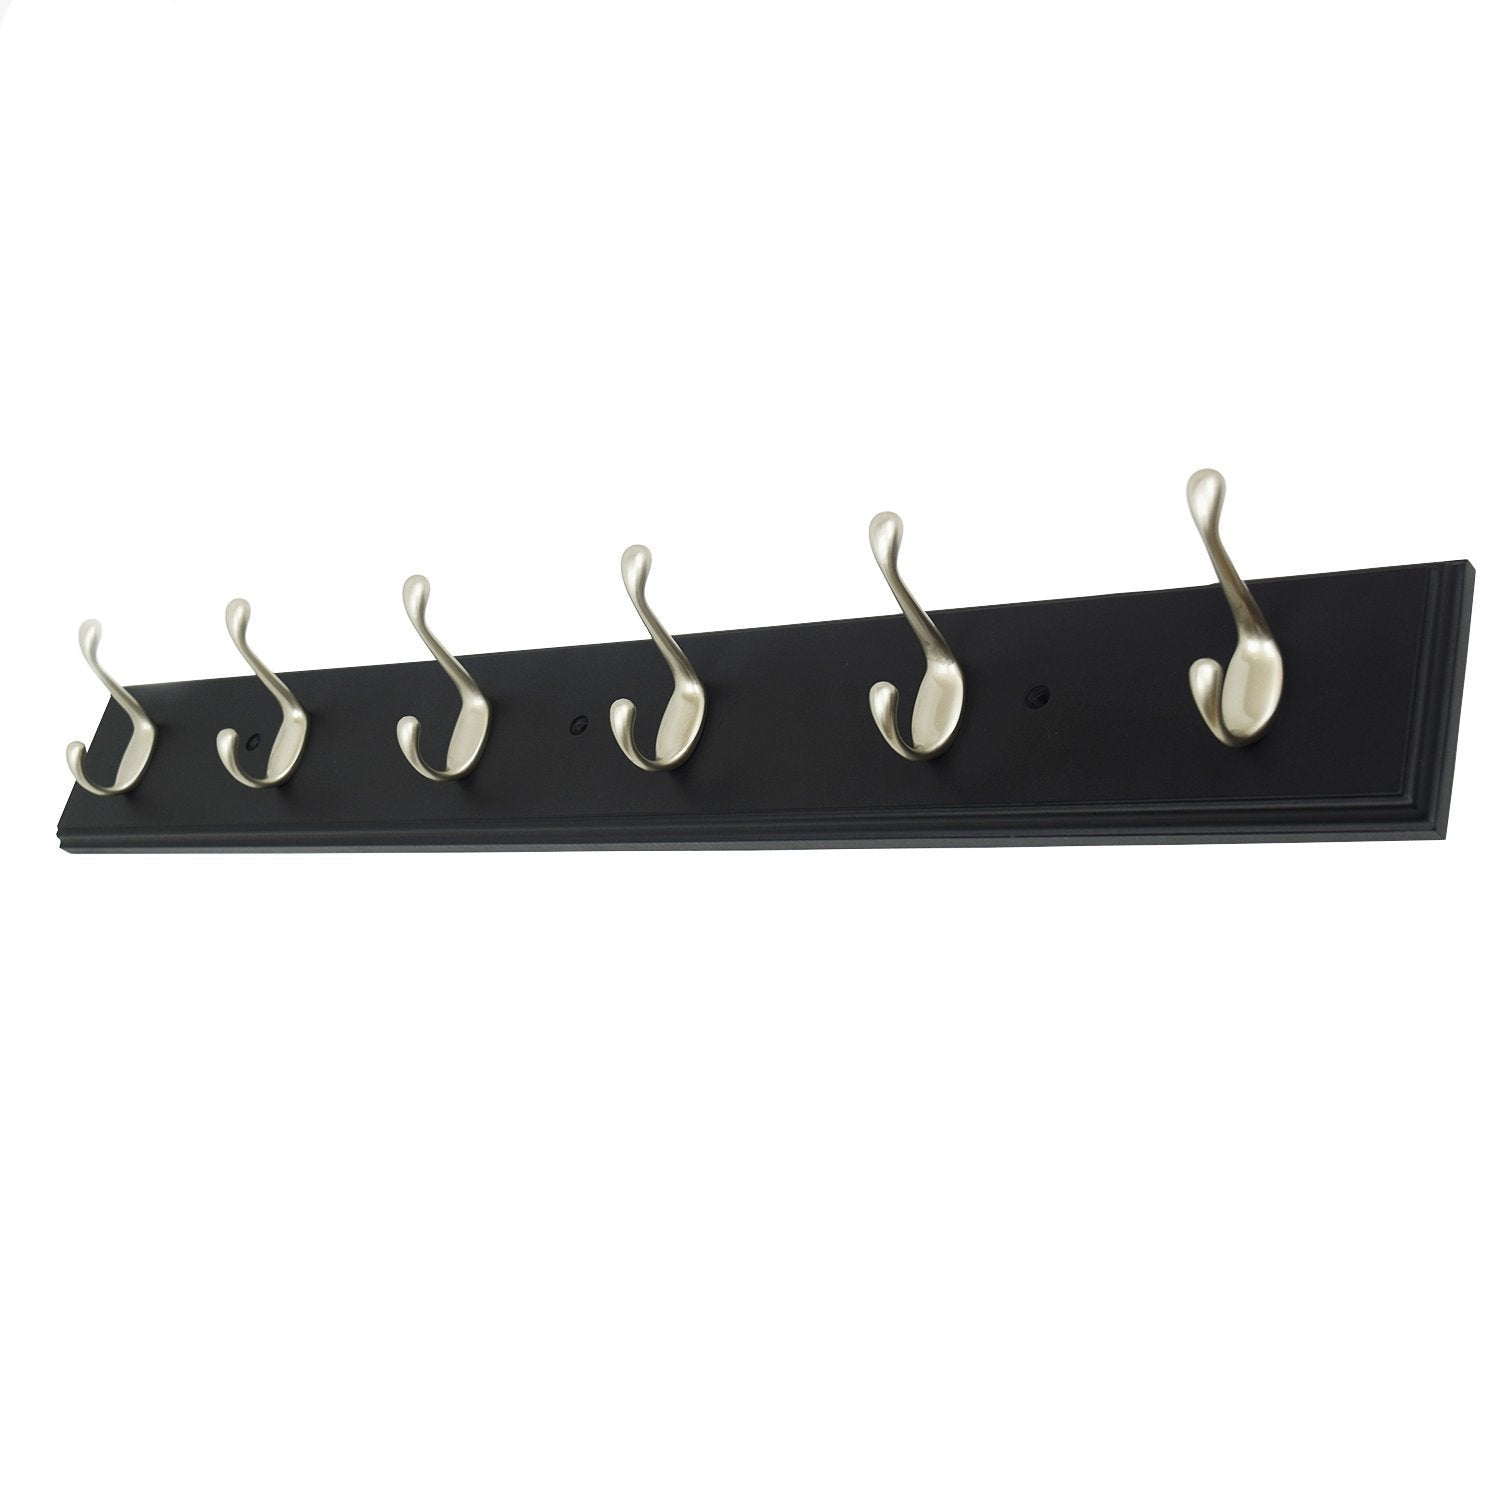 4 Inch Wide Brown Rail/Rack with 1 Heavy Duty Satin Nickel Coat and Hat Hook, Entryway Rack/ Bathroom Towel Hanger, Made in USA